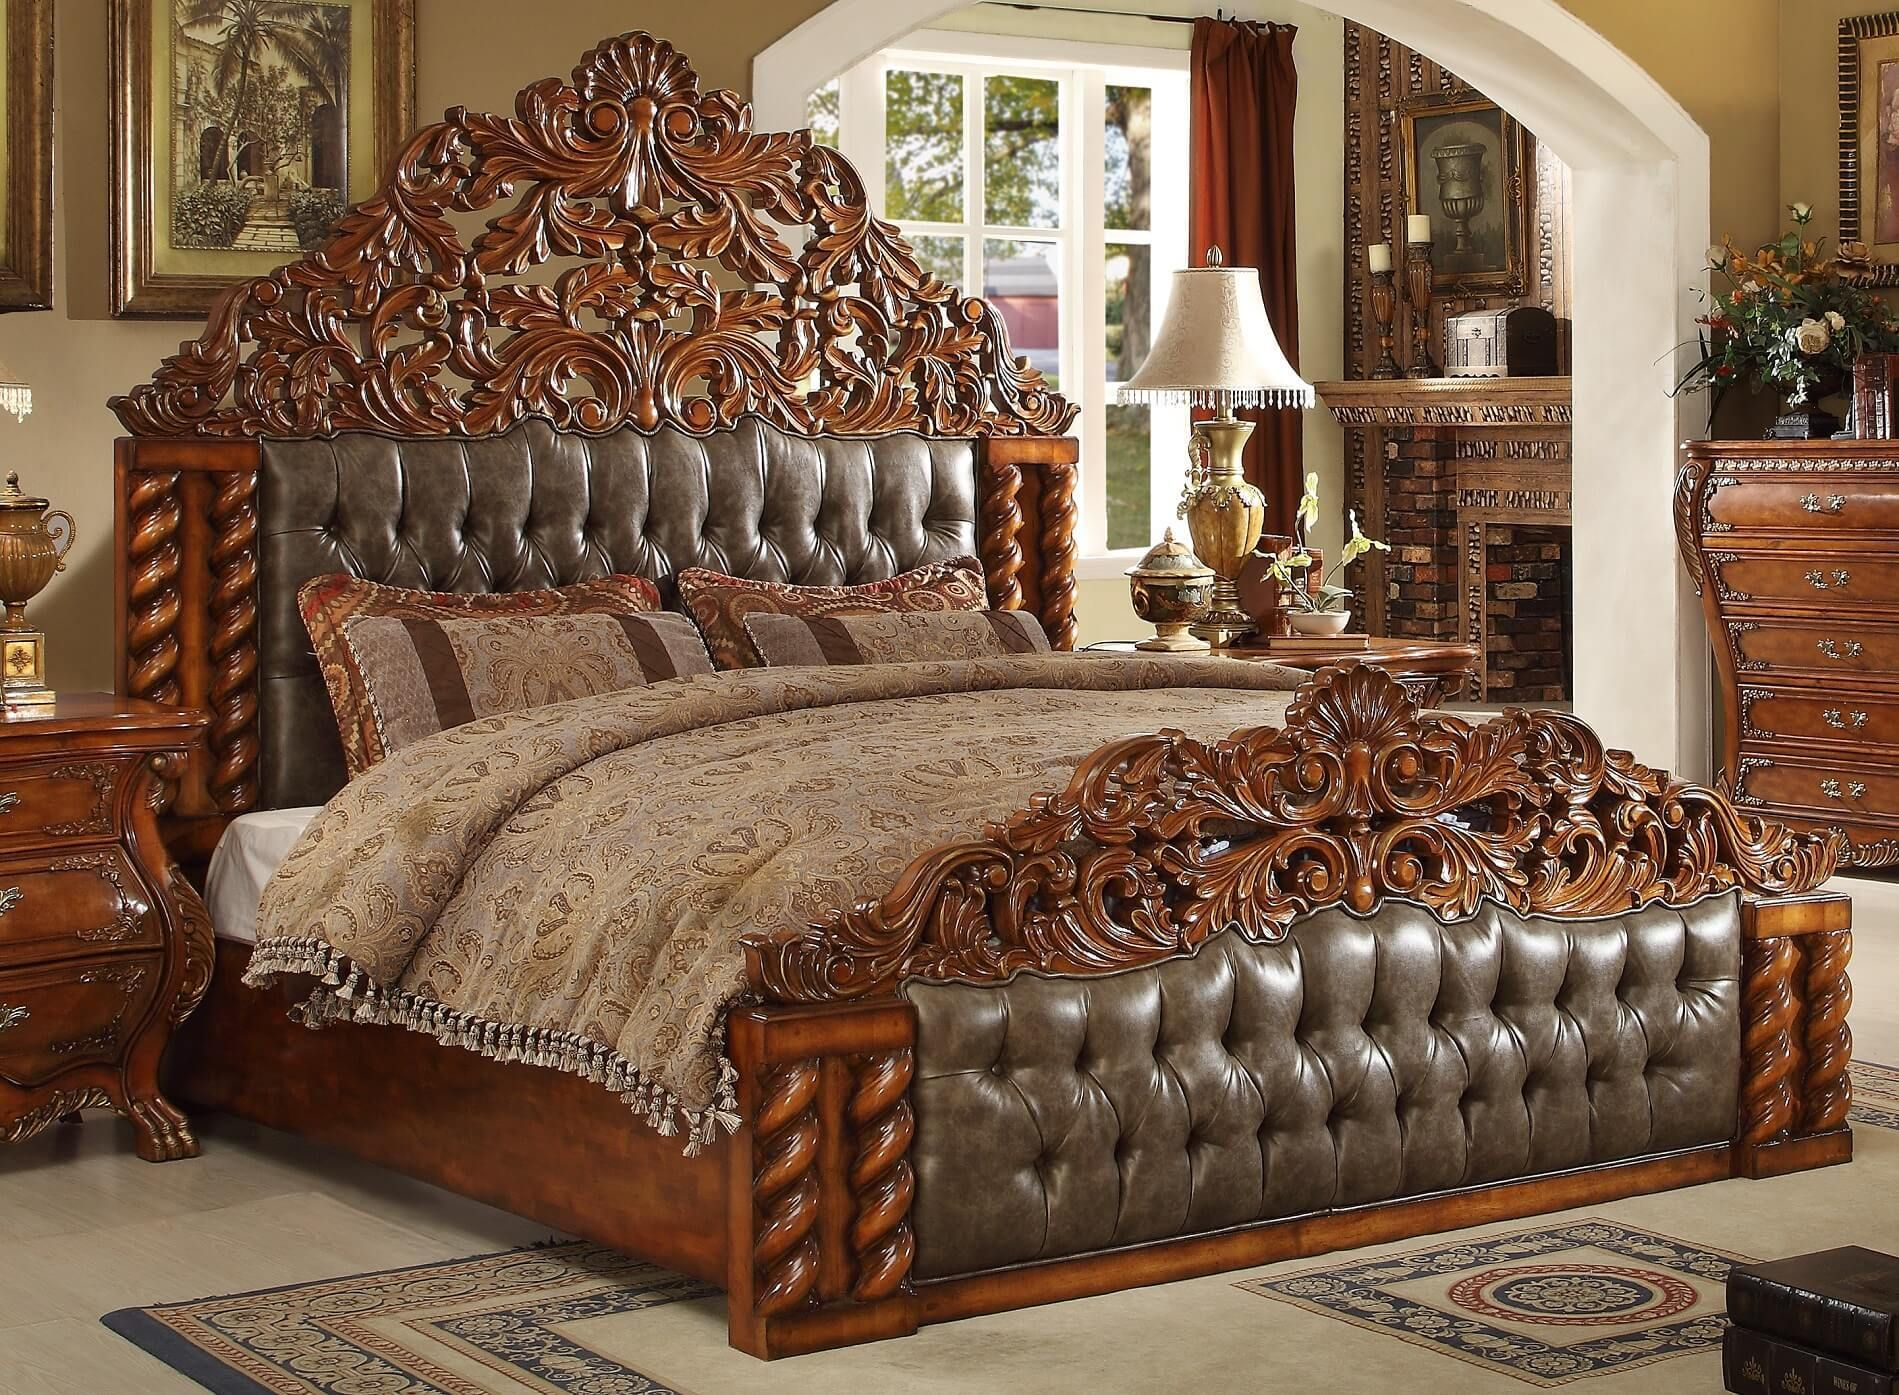 Homey Design Hd 20131 Victorian Bed Usa Furniture Warehouse Bed Furniture Design Luxury Bedroom Sets Bedroom Bed Design